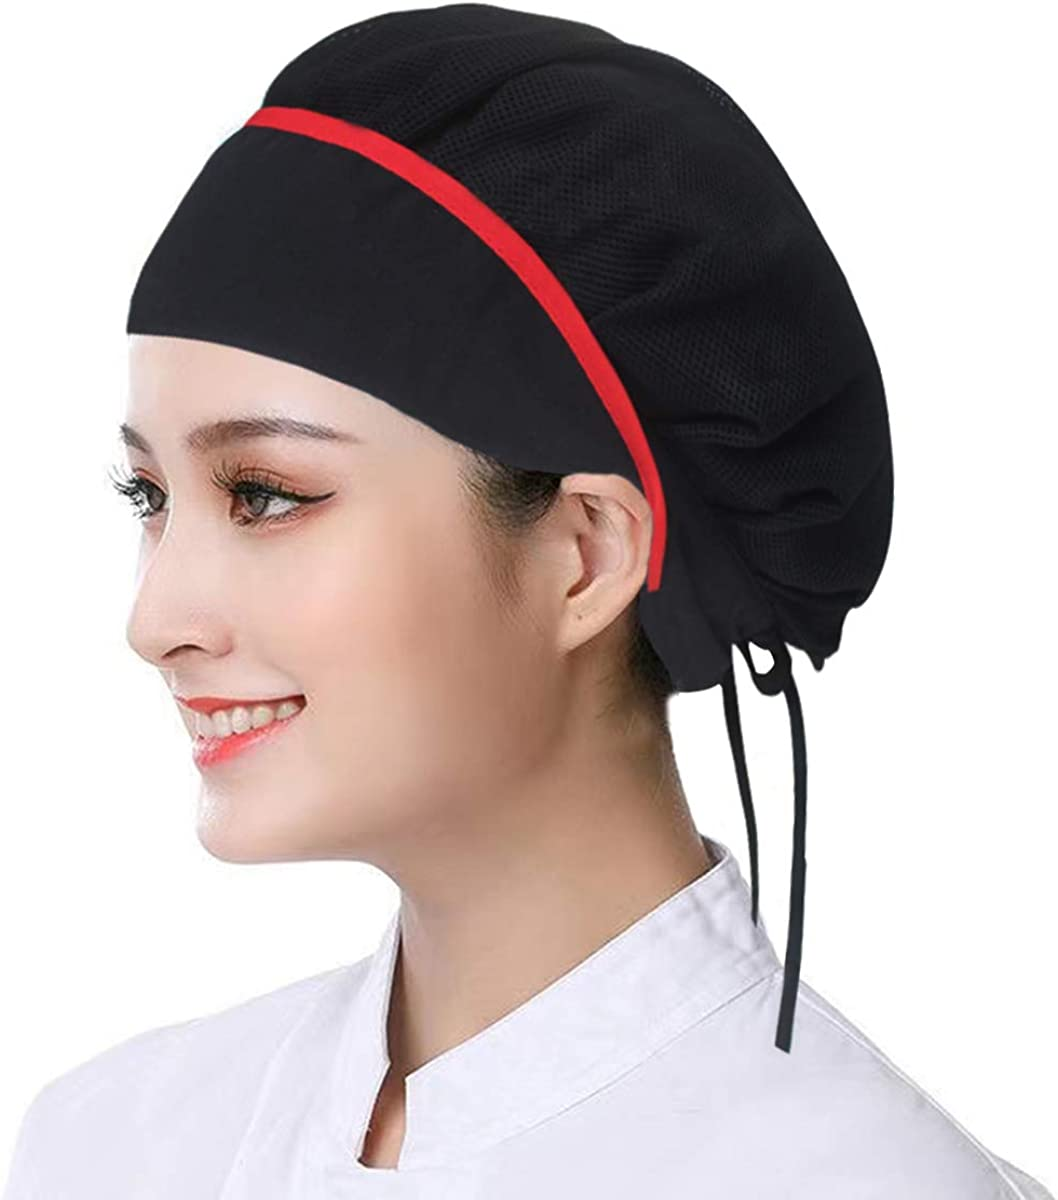 2pcs Chef Hats Adjustable & Reusable Kitchen Cooking Chef Caps Food Service Hair Nets Breathable Mesh Work Hat